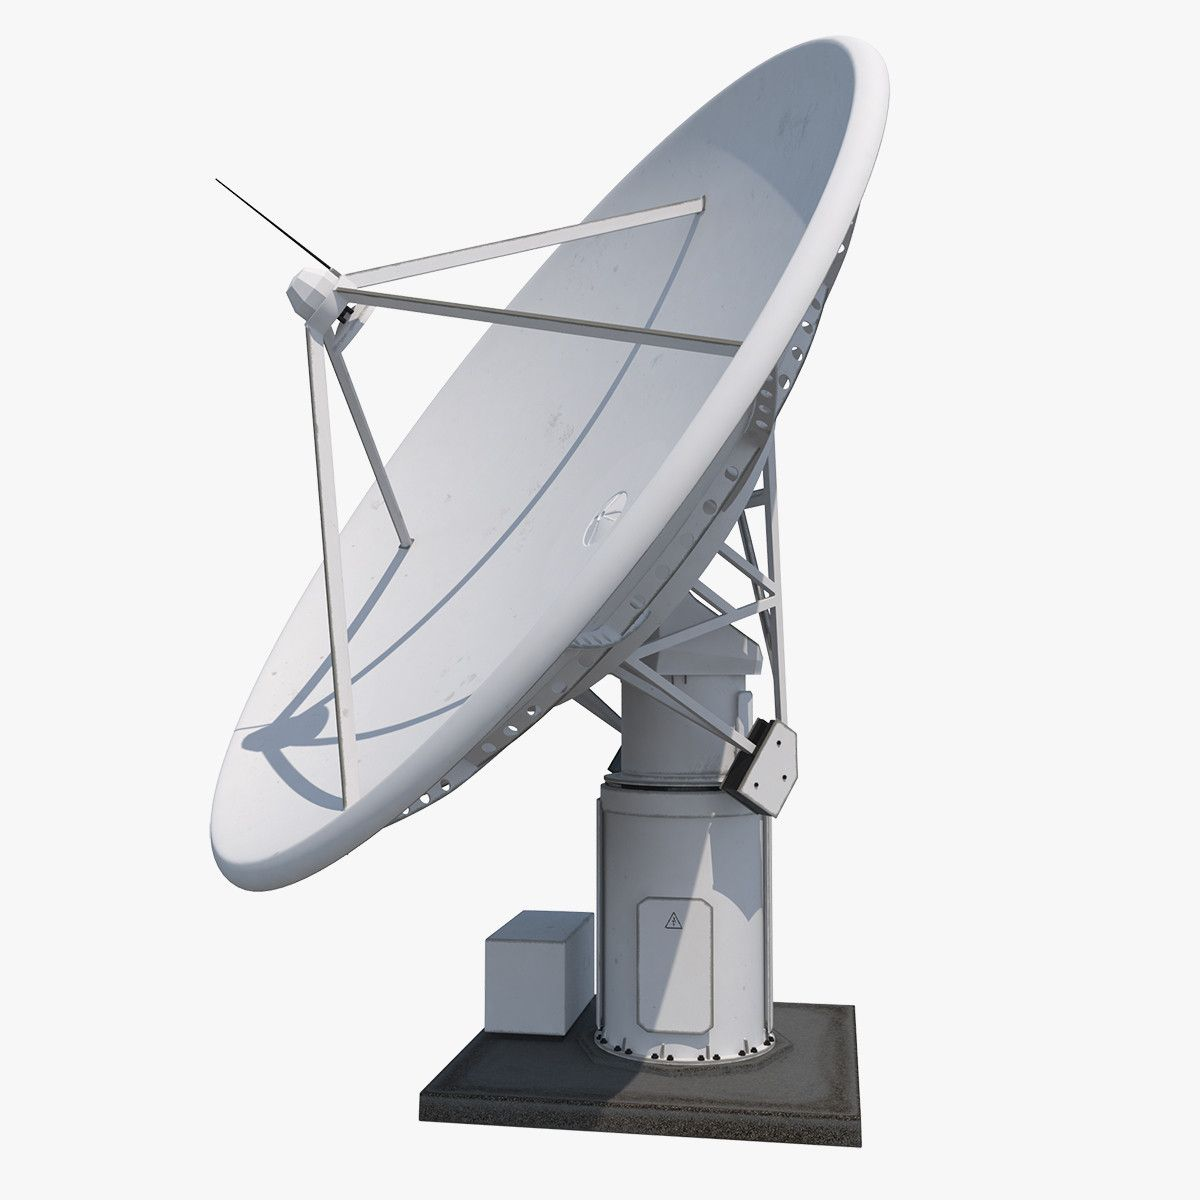 Antenna Communication Dish Satellite Space Icon Download On Iconfinder Space Icons Icon Tv Icon